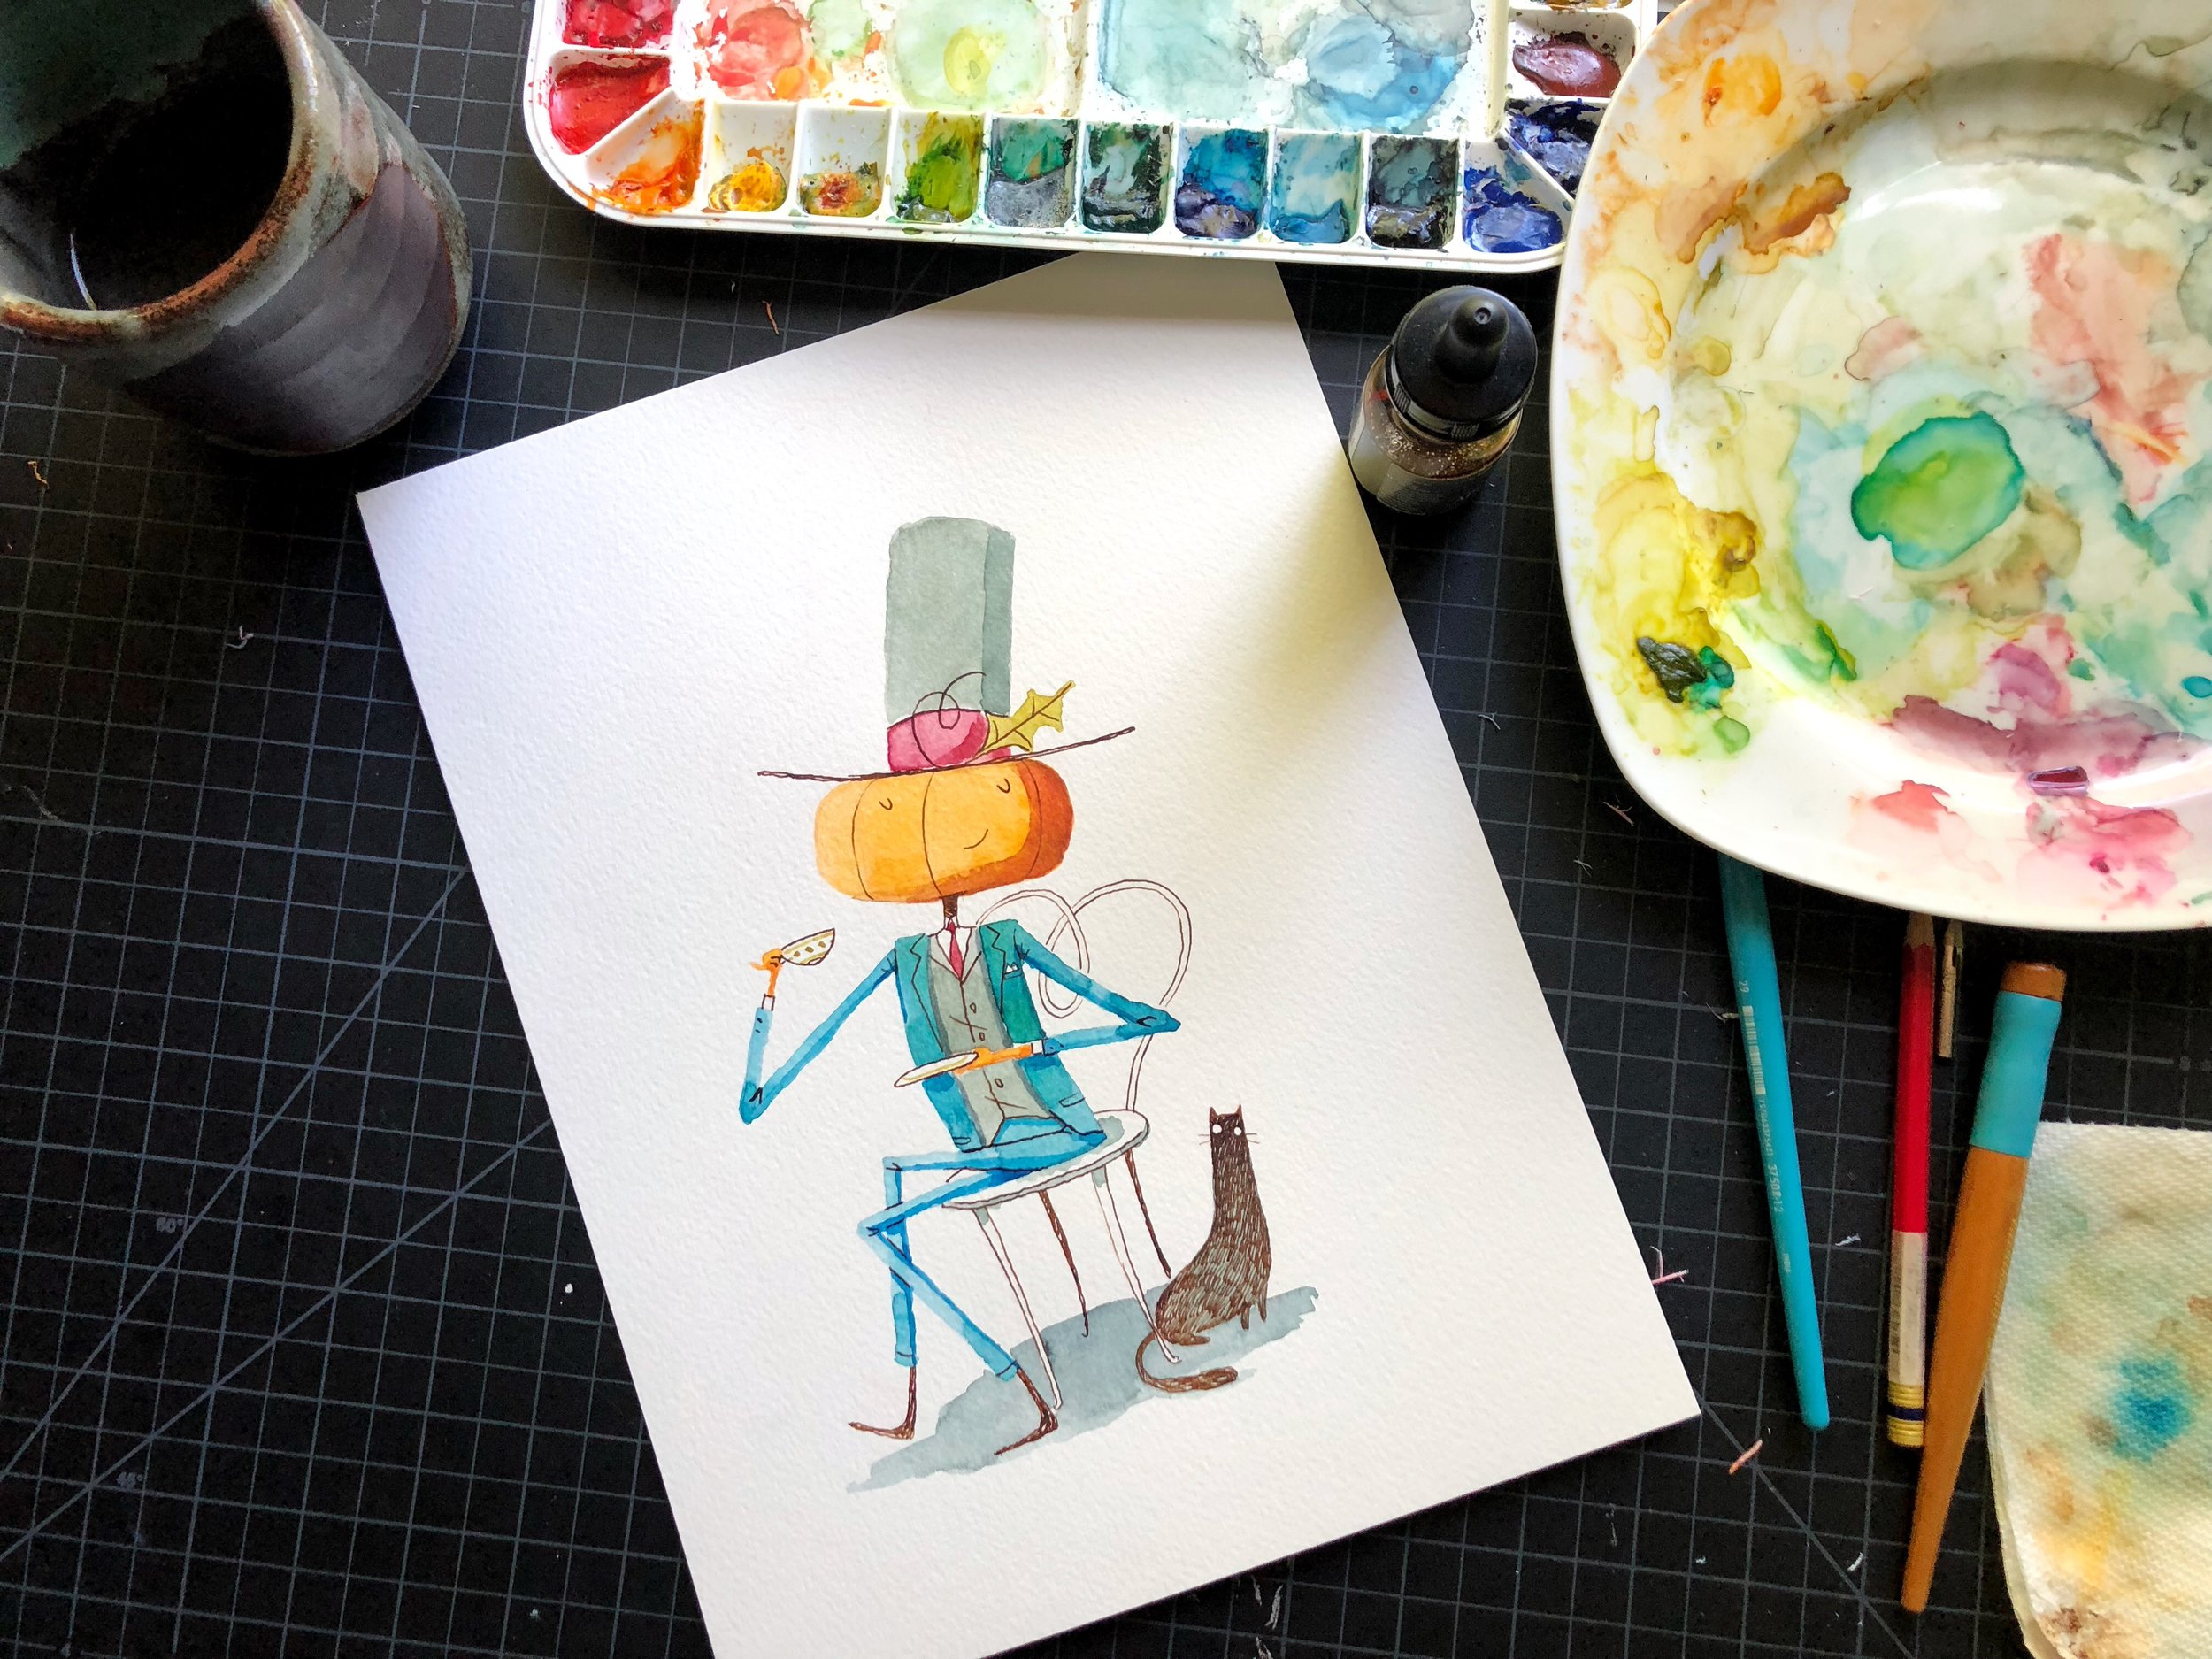 After the initial Inktober sketch, Erin refined Mr. Pumpkin's look and made him kid-friendly for the picture book, seen here in her studio.